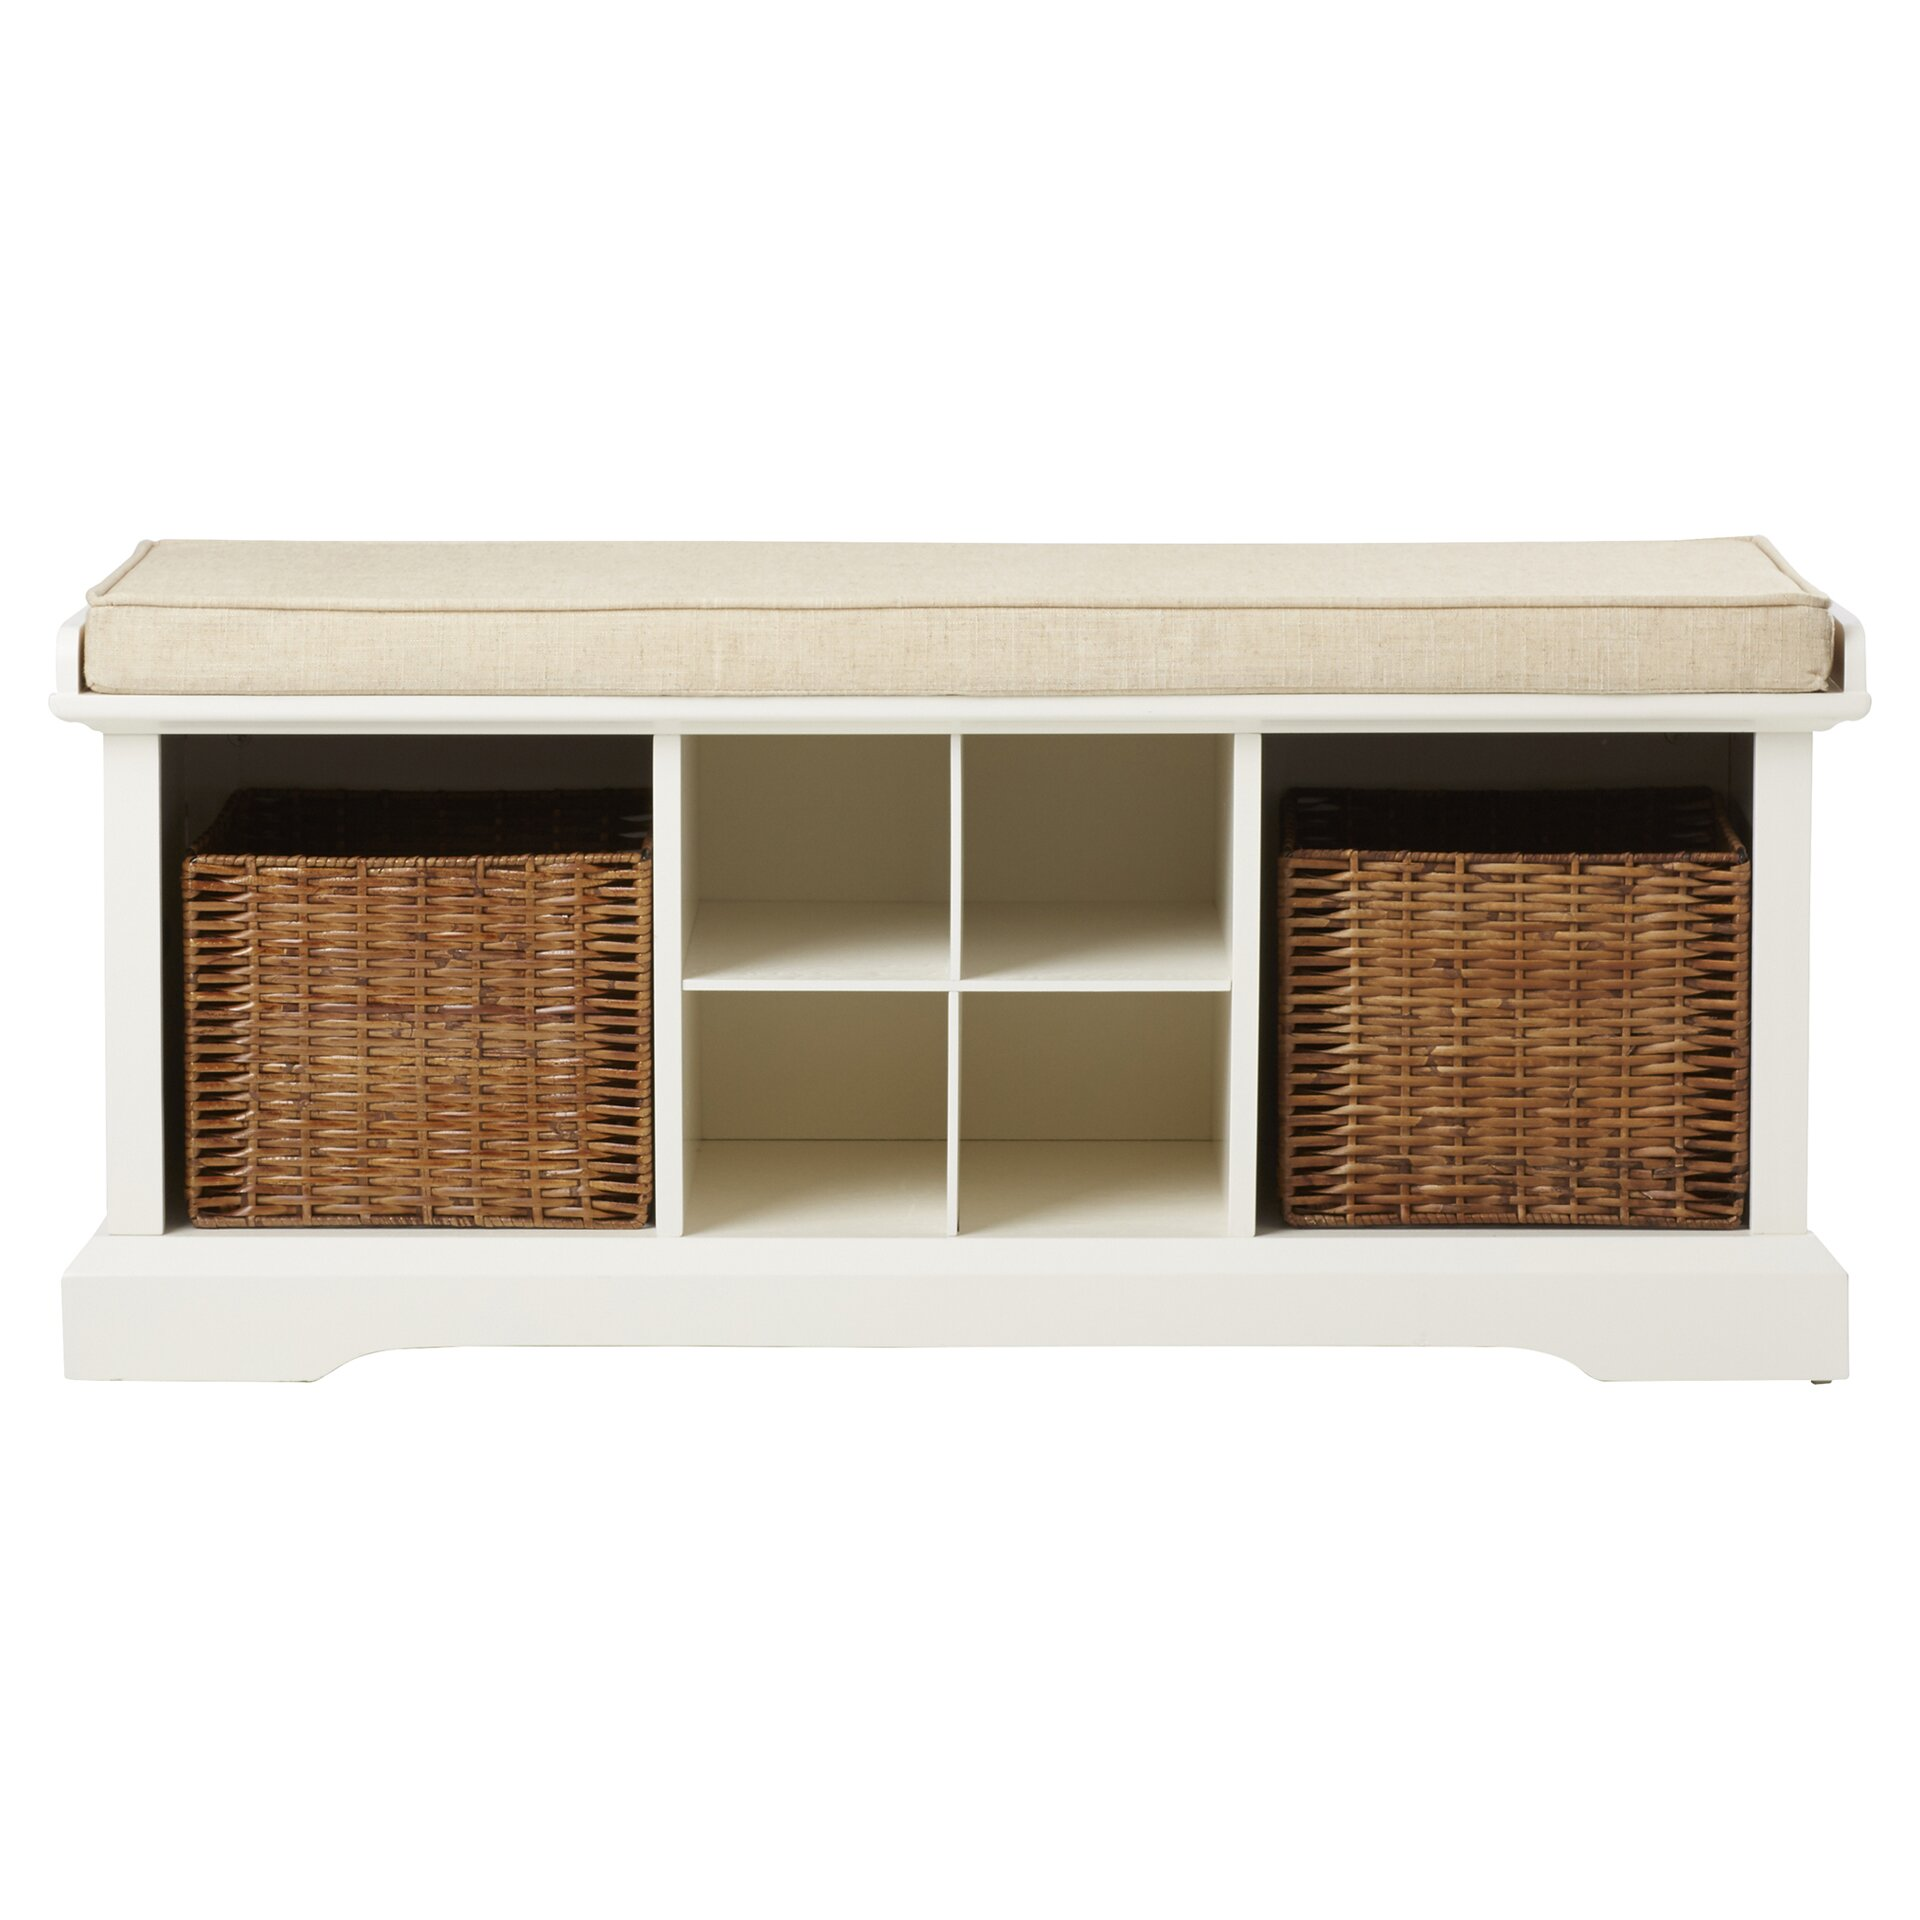 Foyer Mudroom Review : Breakwater bay selbyville storage entryway bench reviews